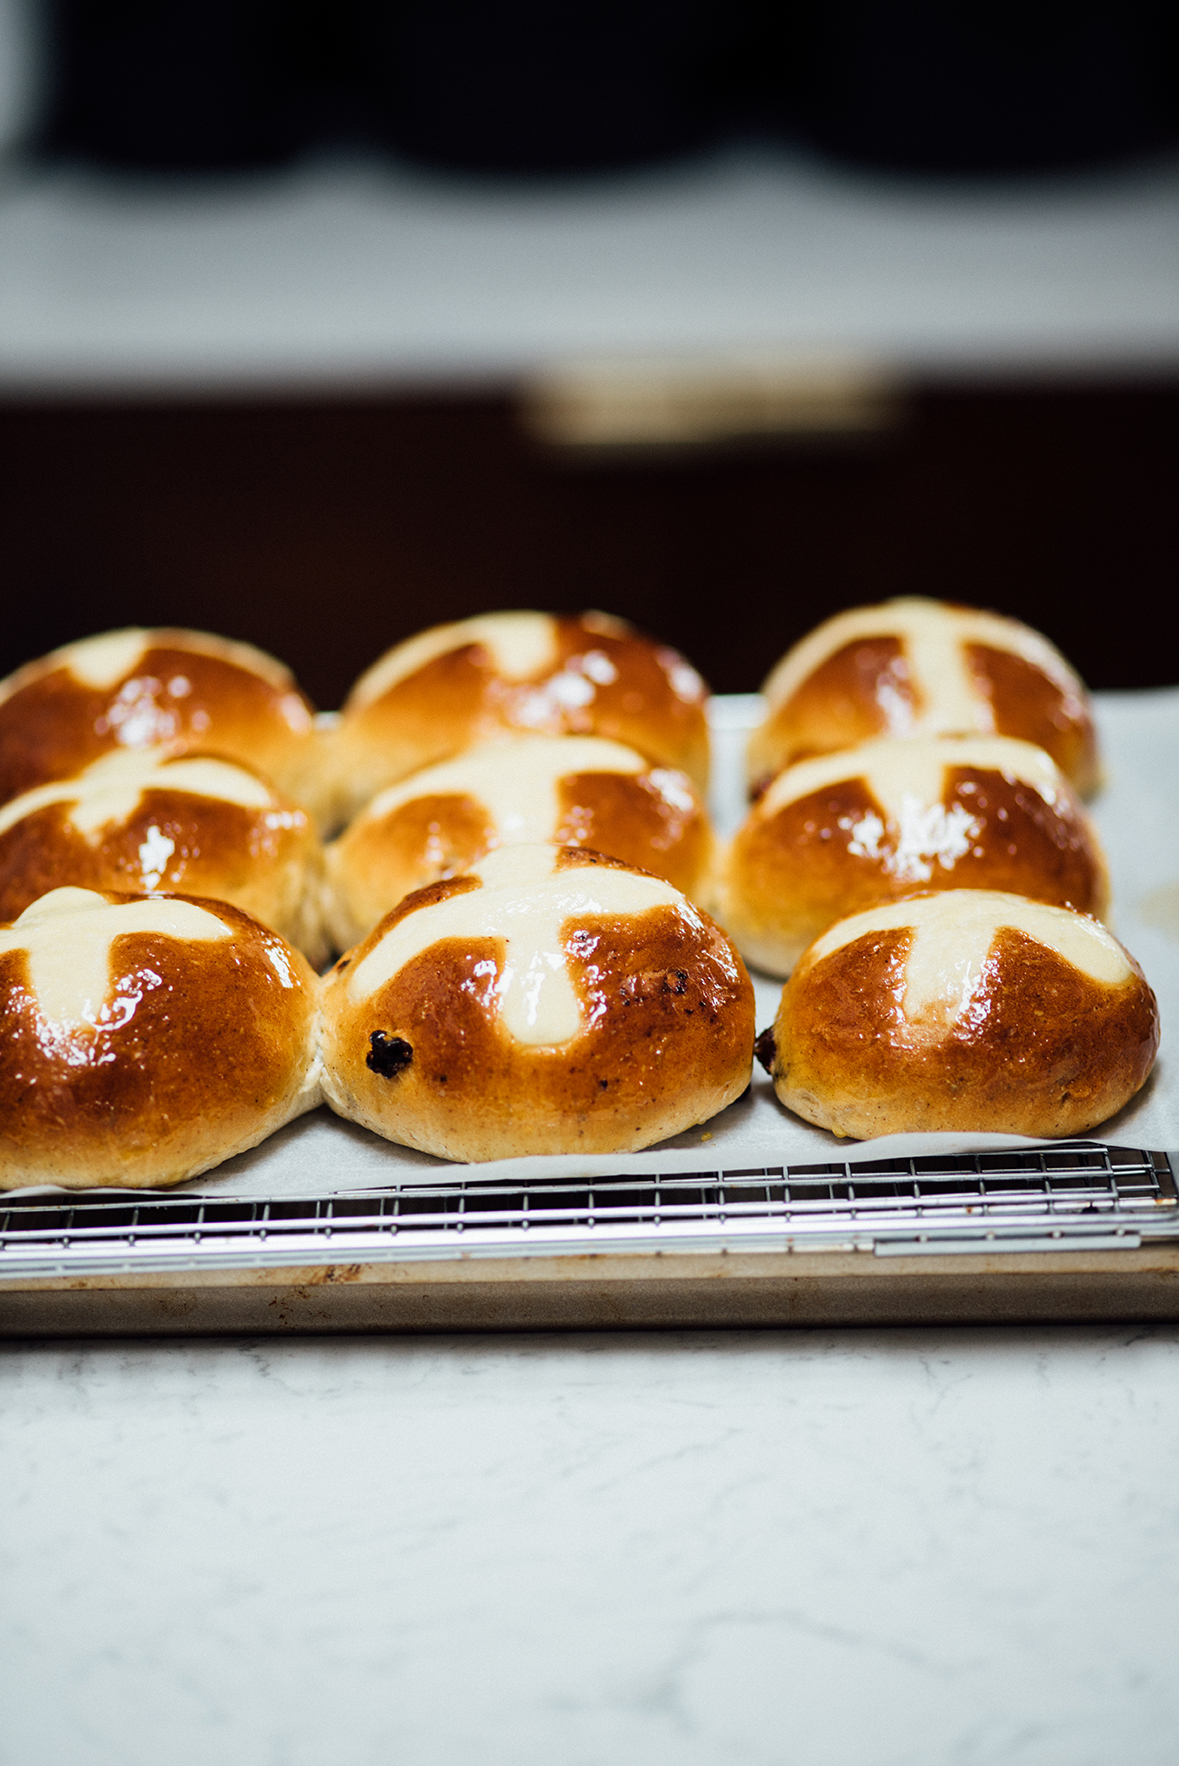 hot cross buns| Nik Sharma